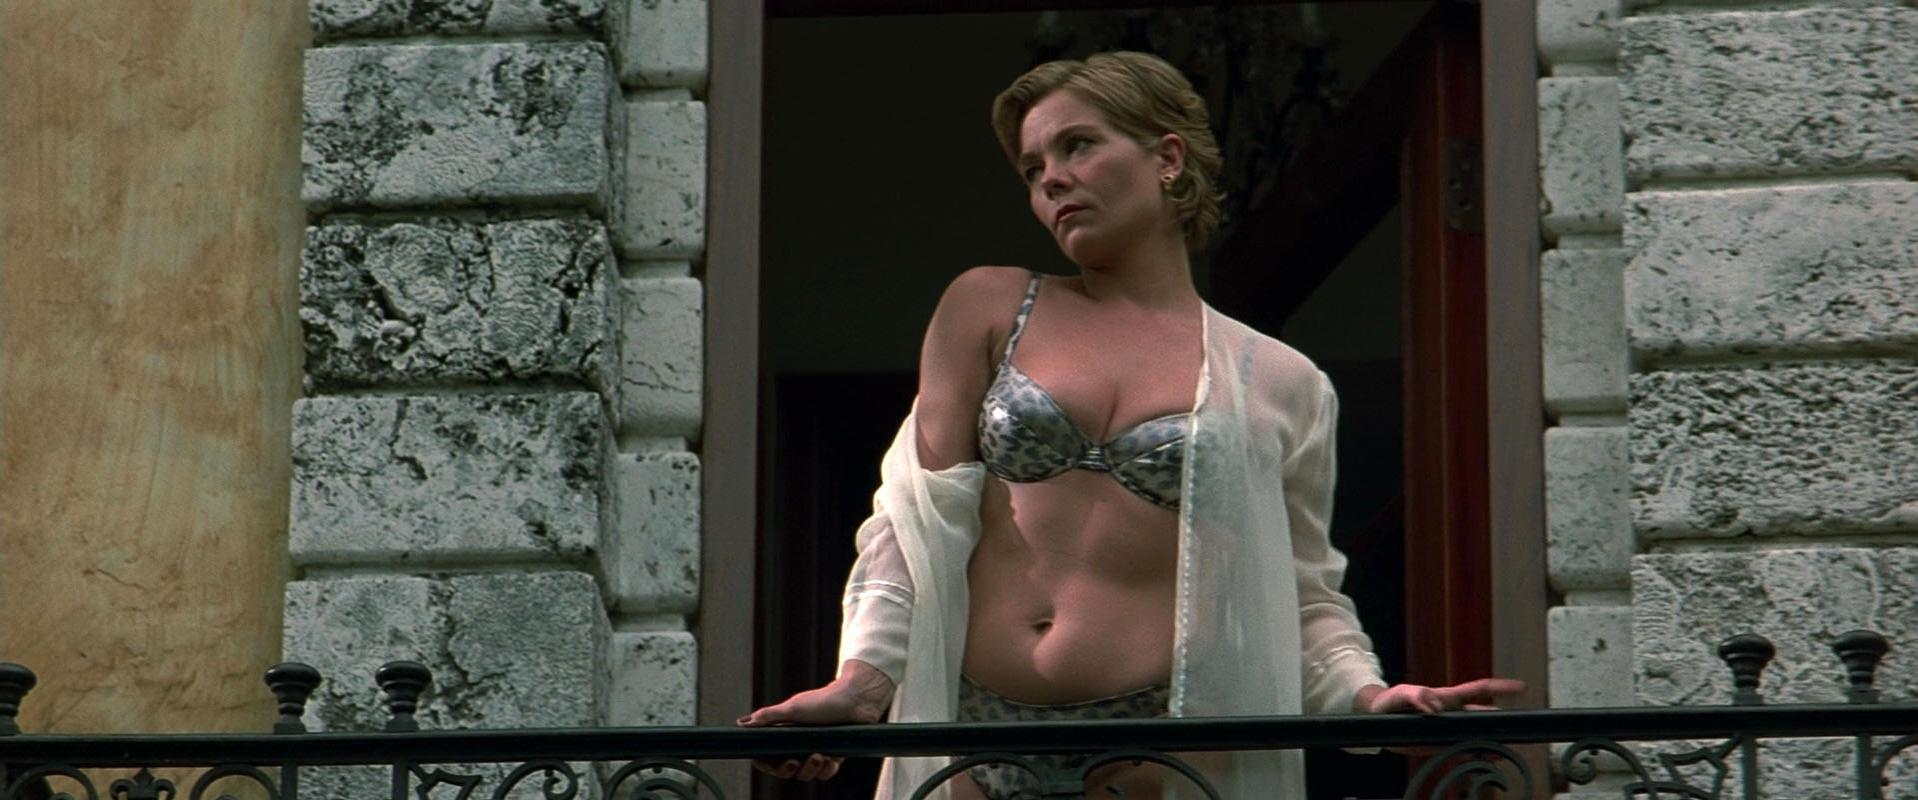 theresa russell wild things sex